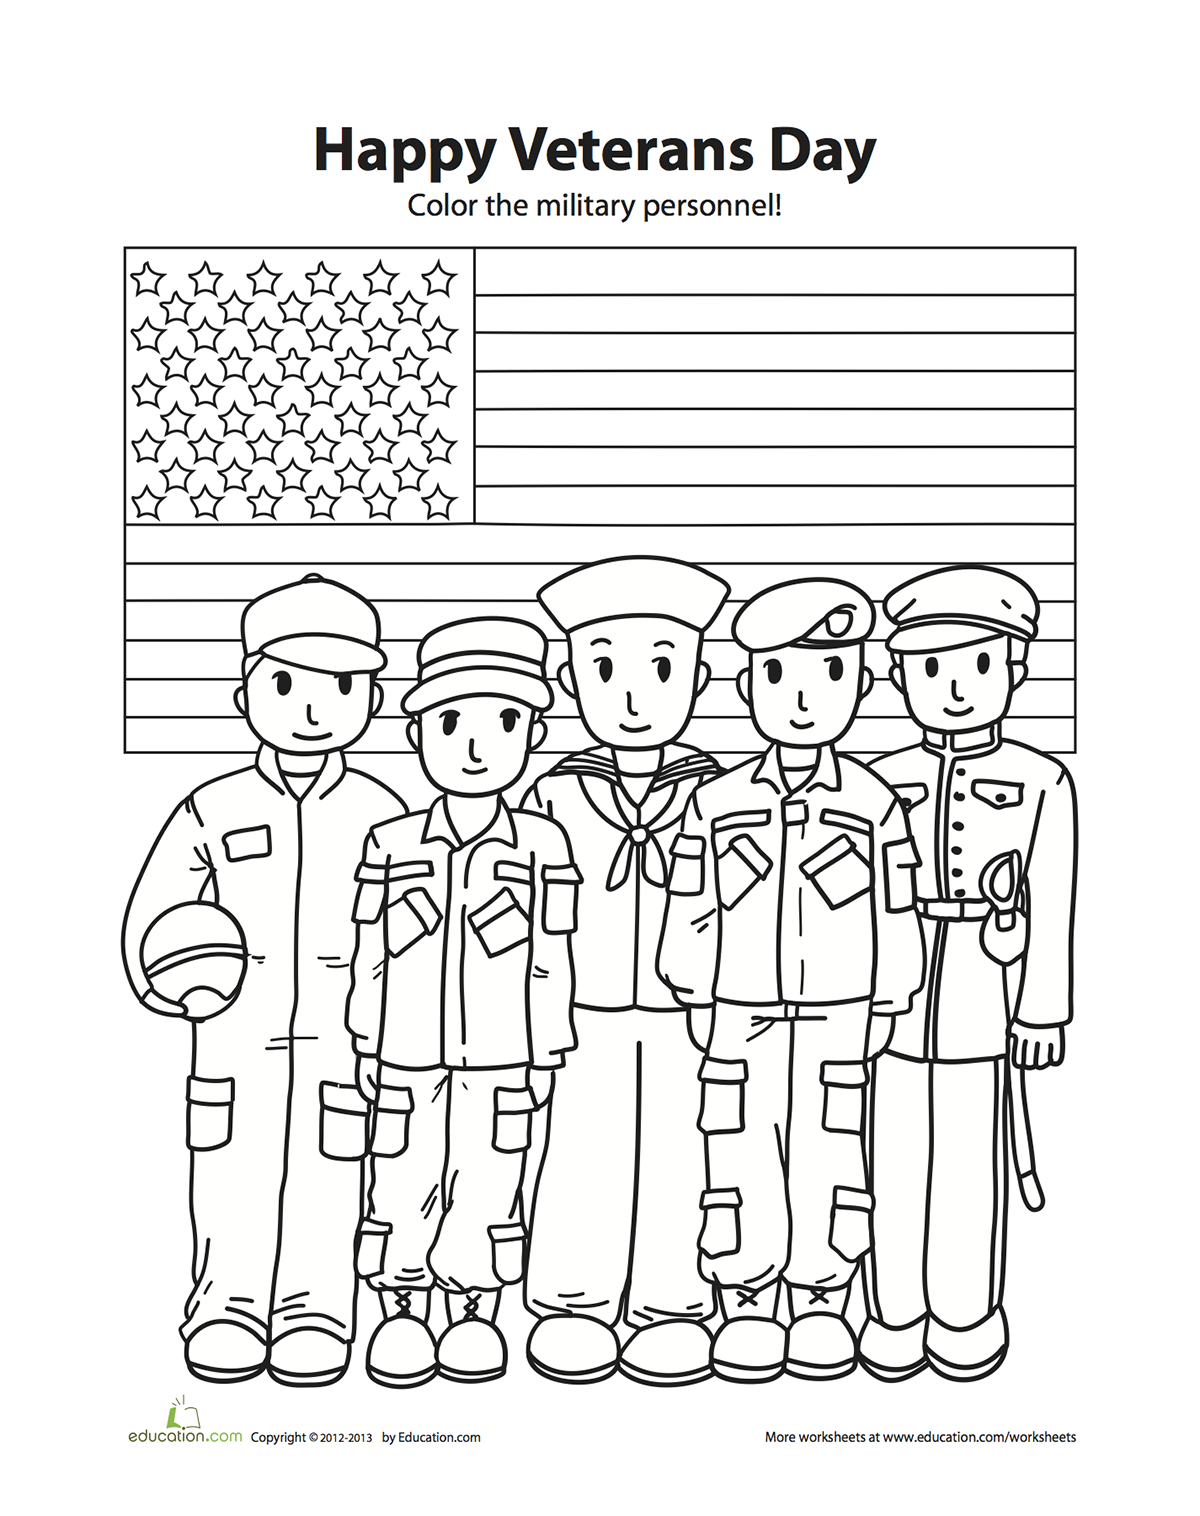 Veterans Day Coloring Pages - Get Coloring Pages